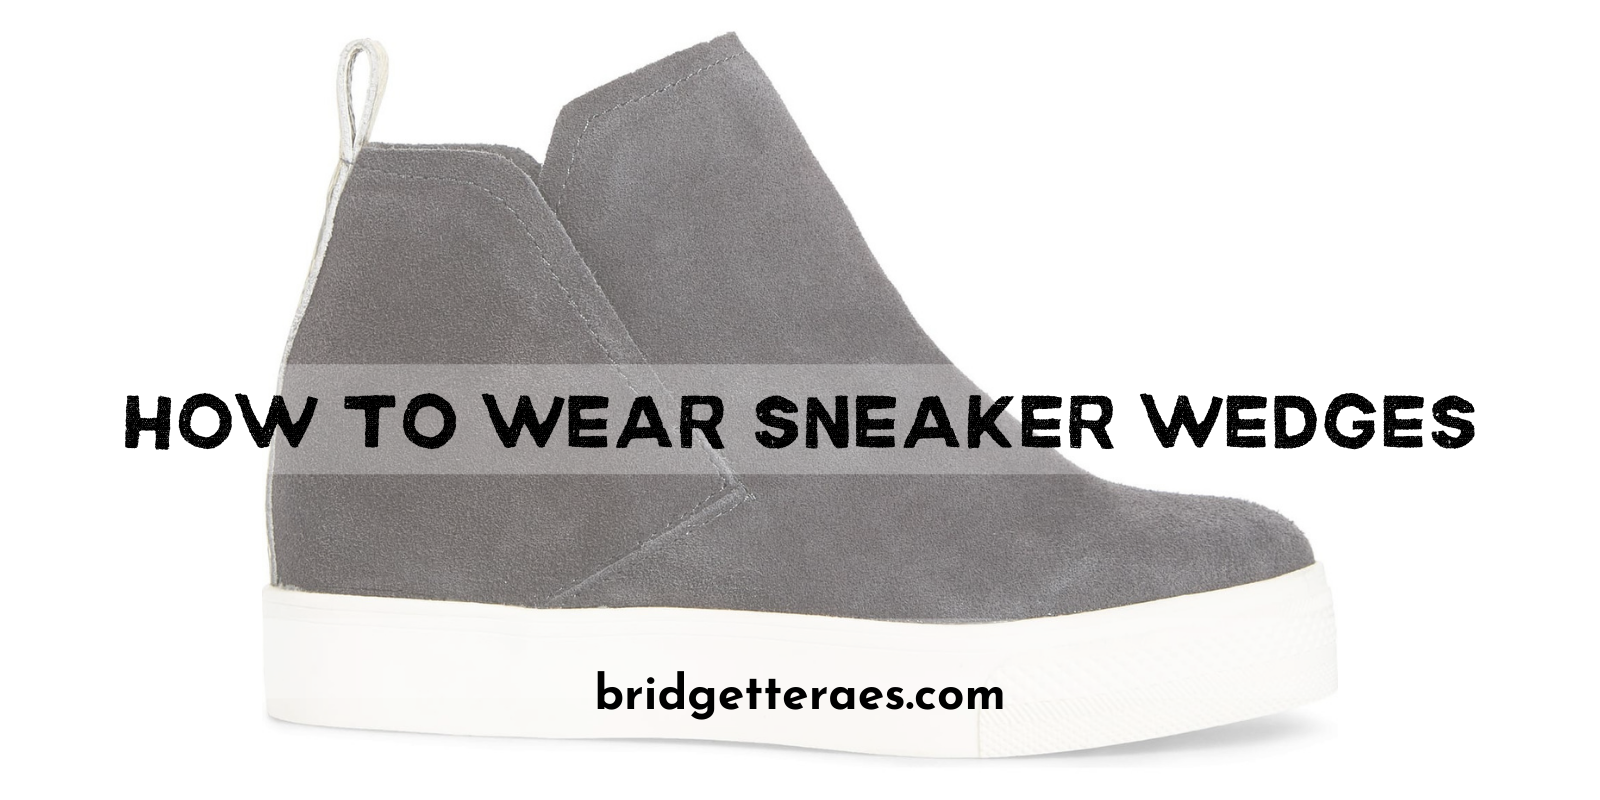 How to Wear Sneaker Wedges